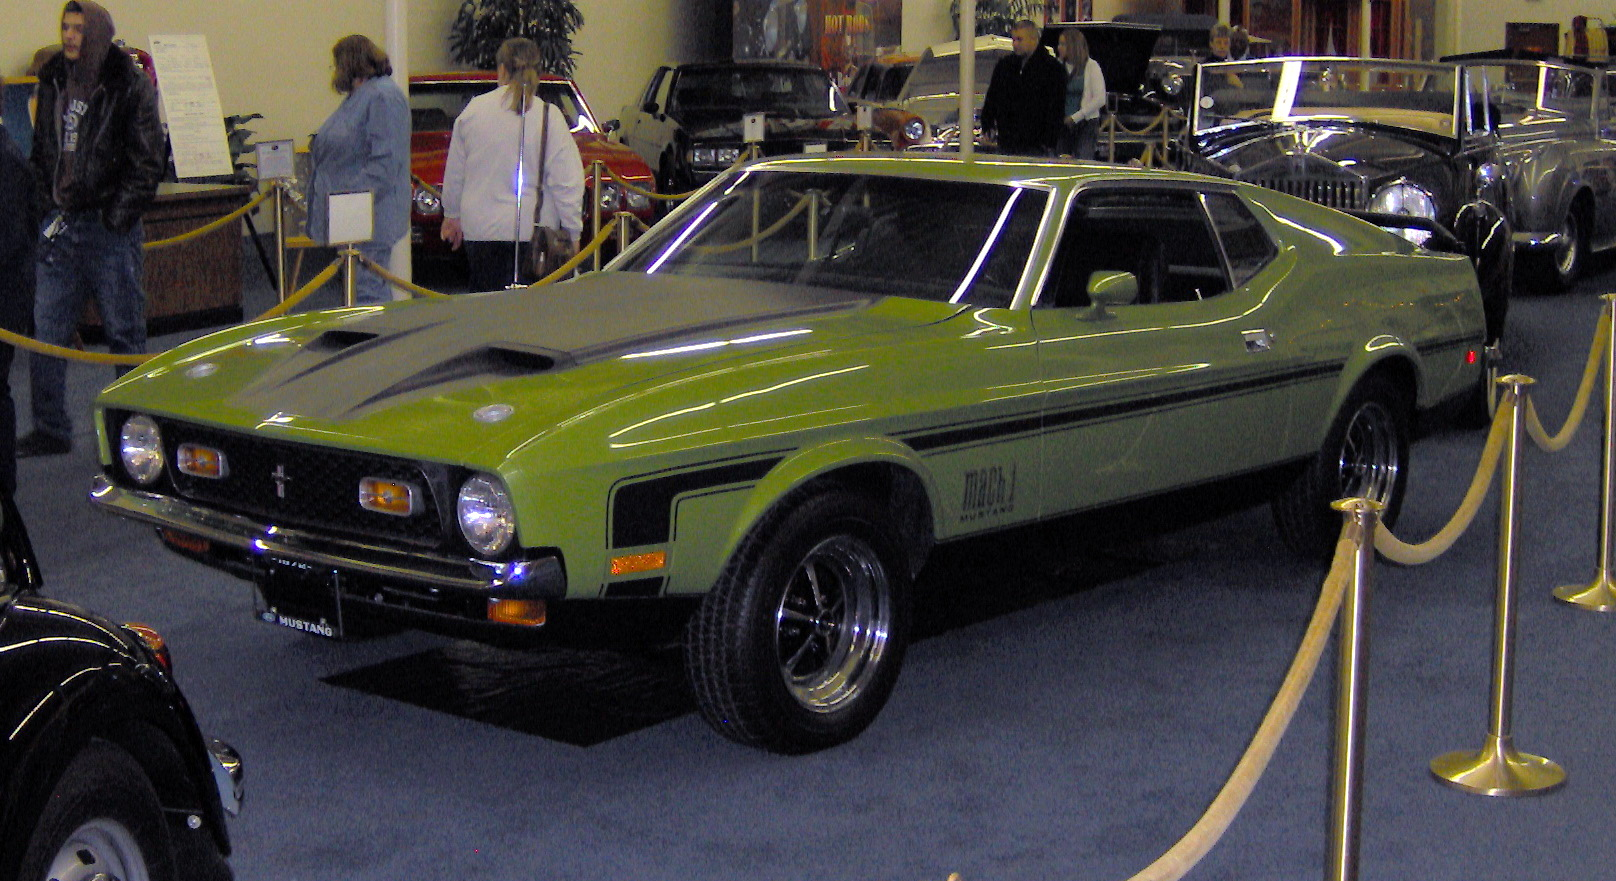 Description 1972 Ford Mustang Mach 1 JPG